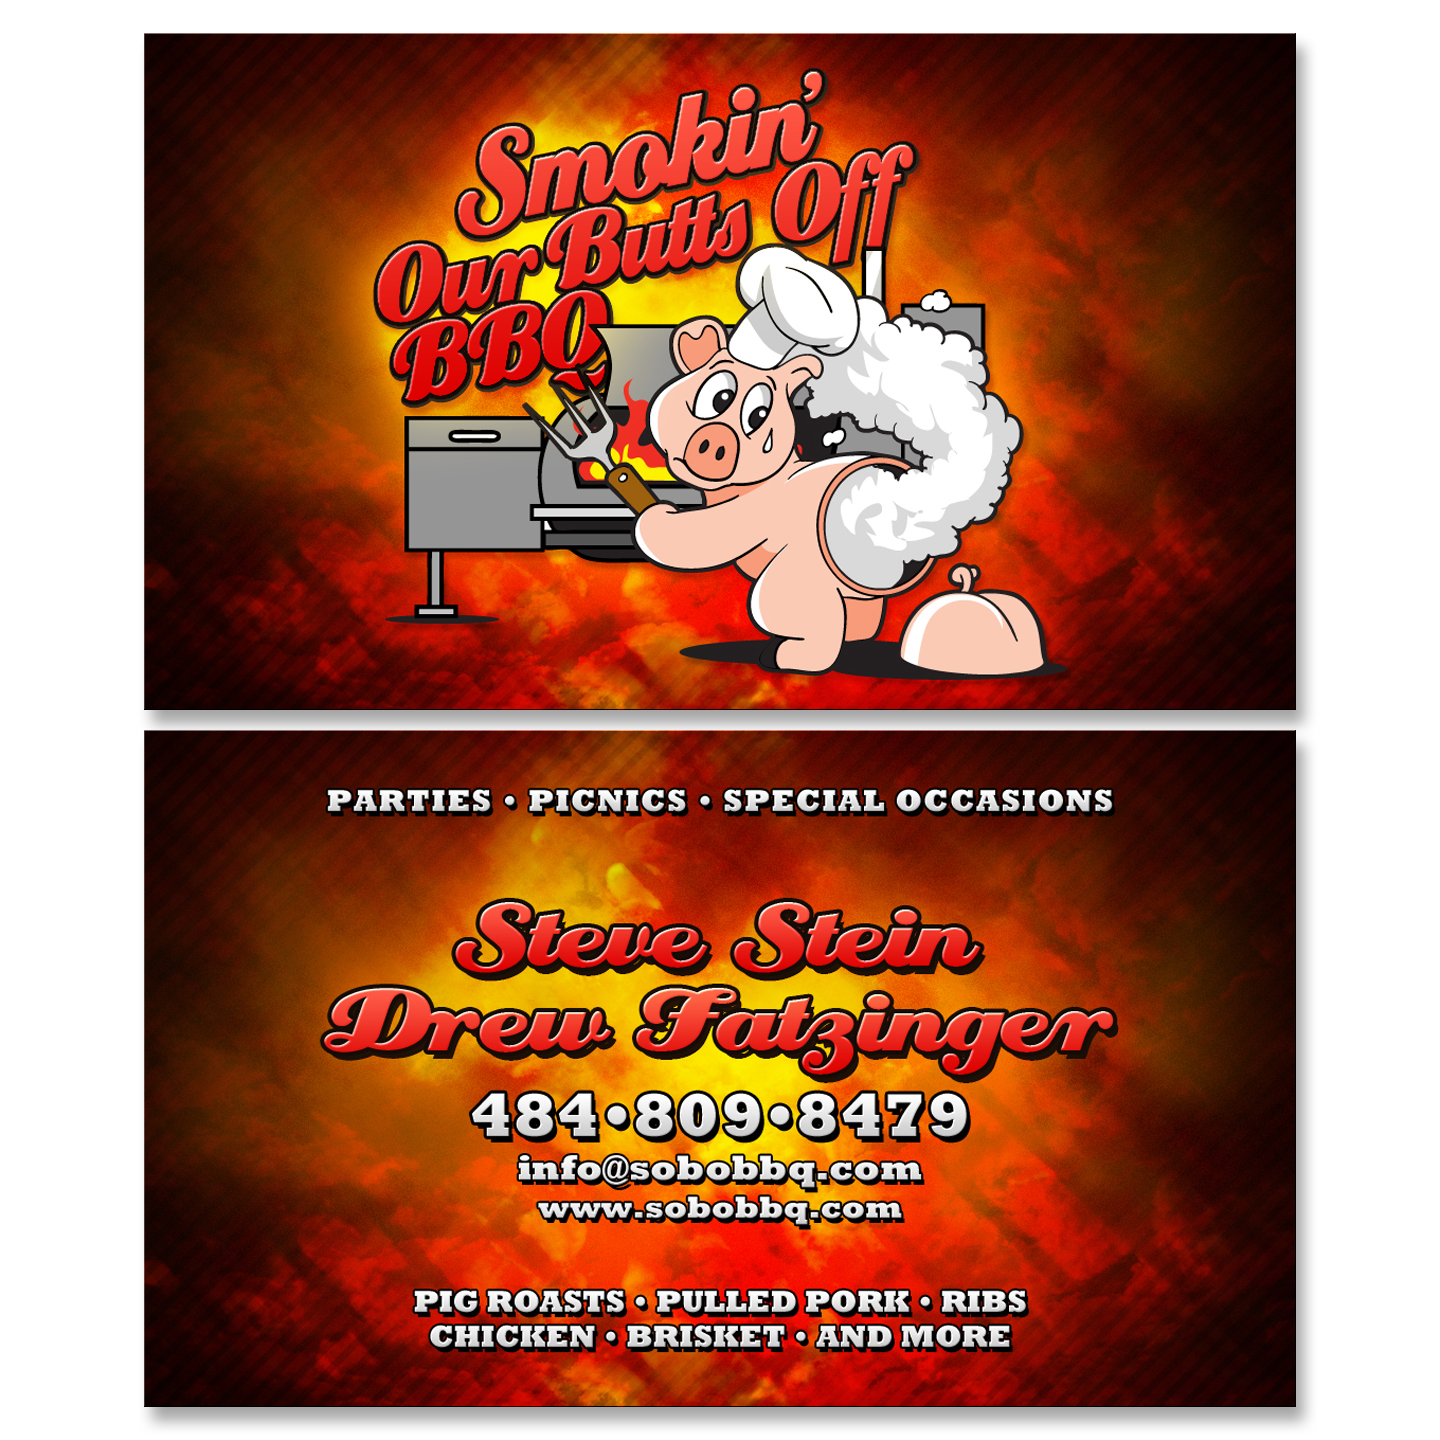 Bbq catering business cards choice image card design and for Bbq catering business cards